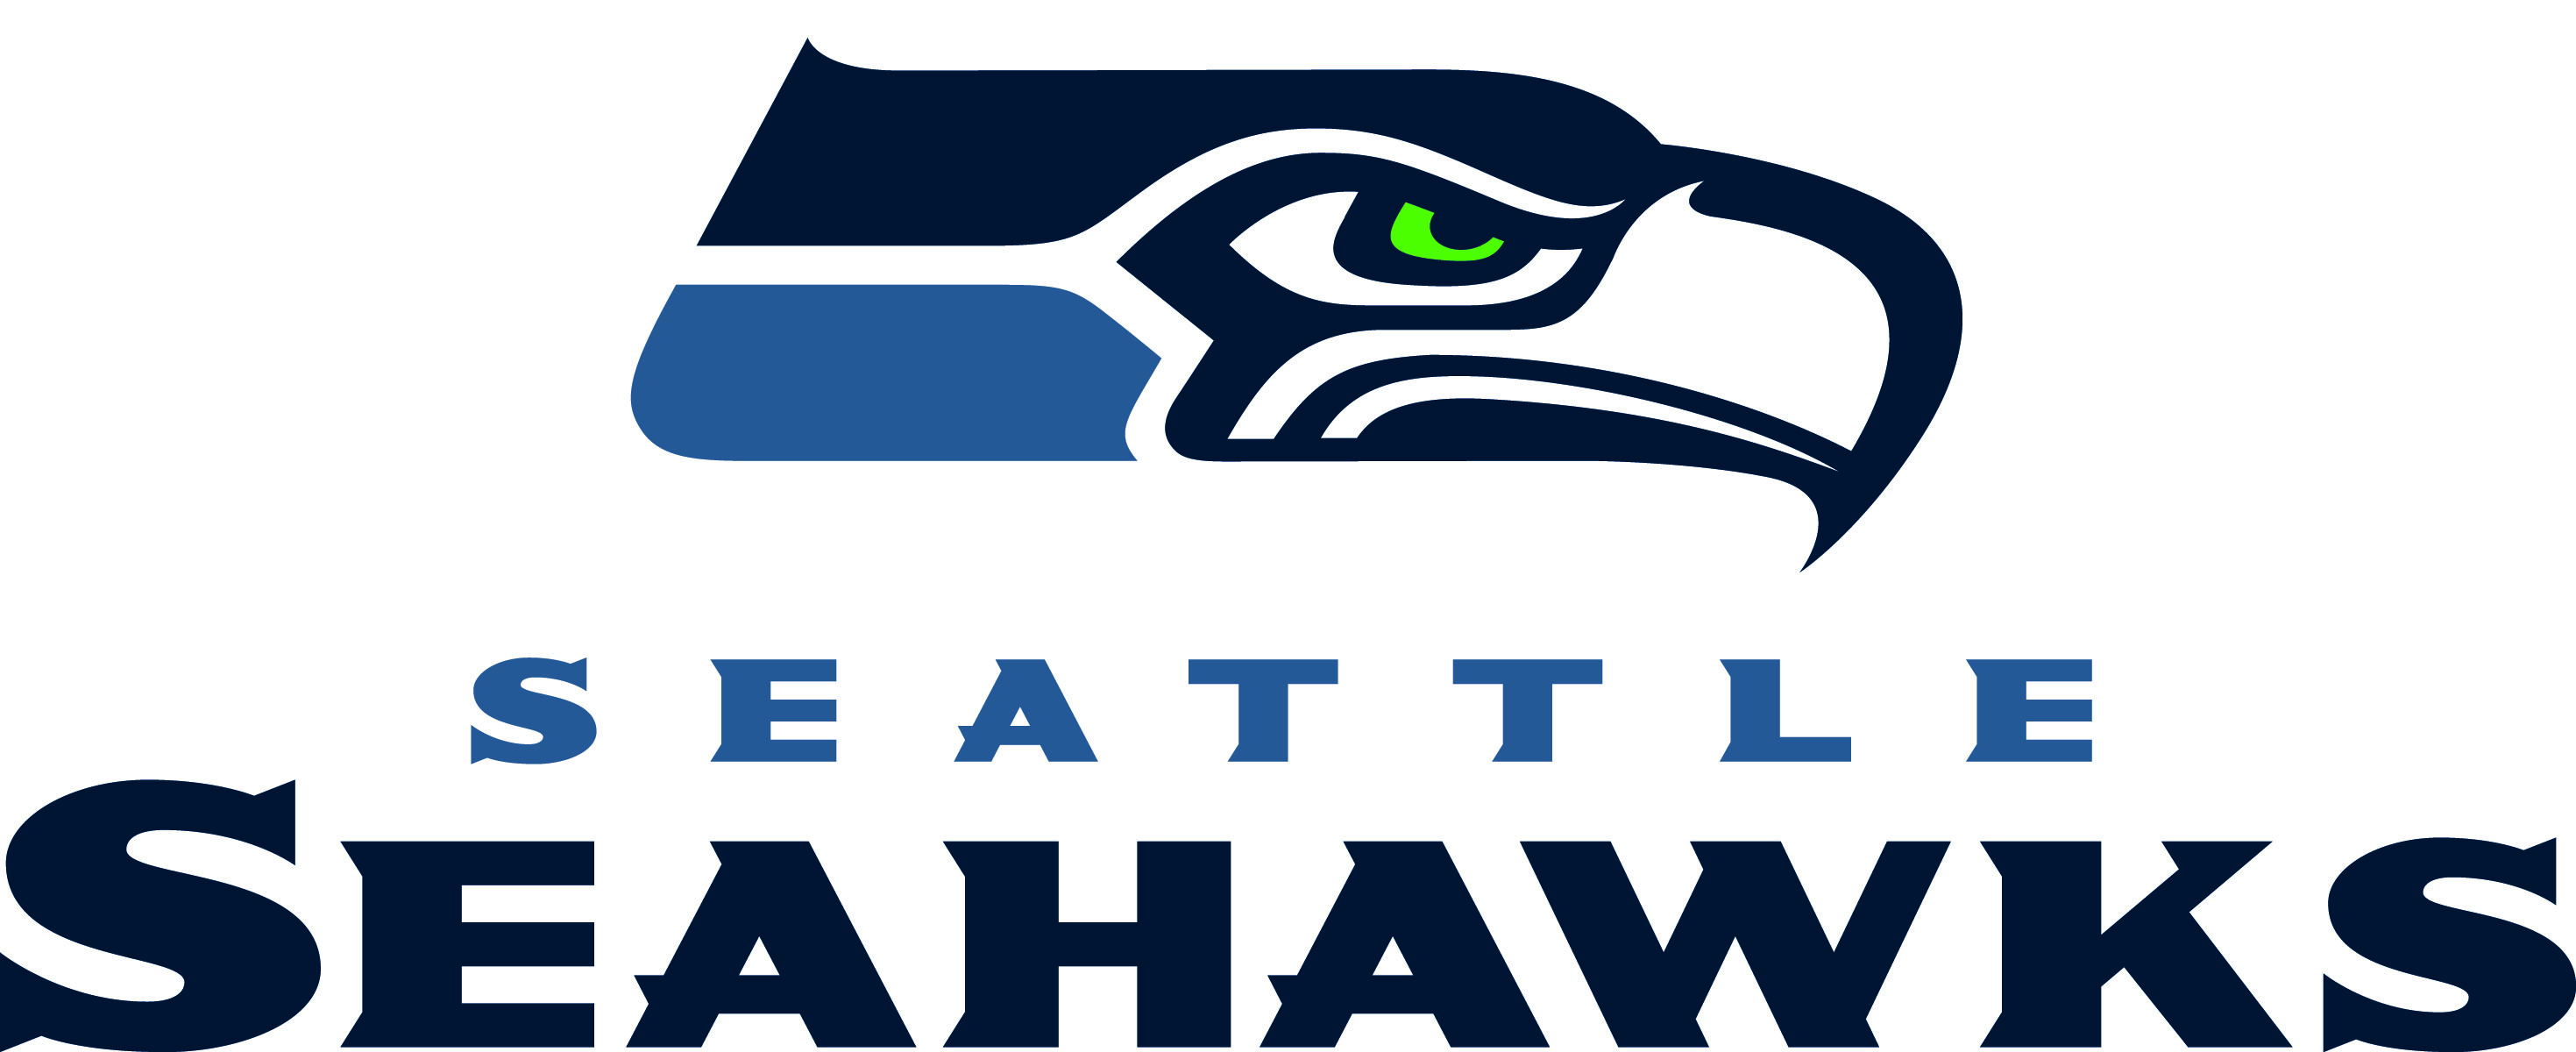 seahawks - photo #19